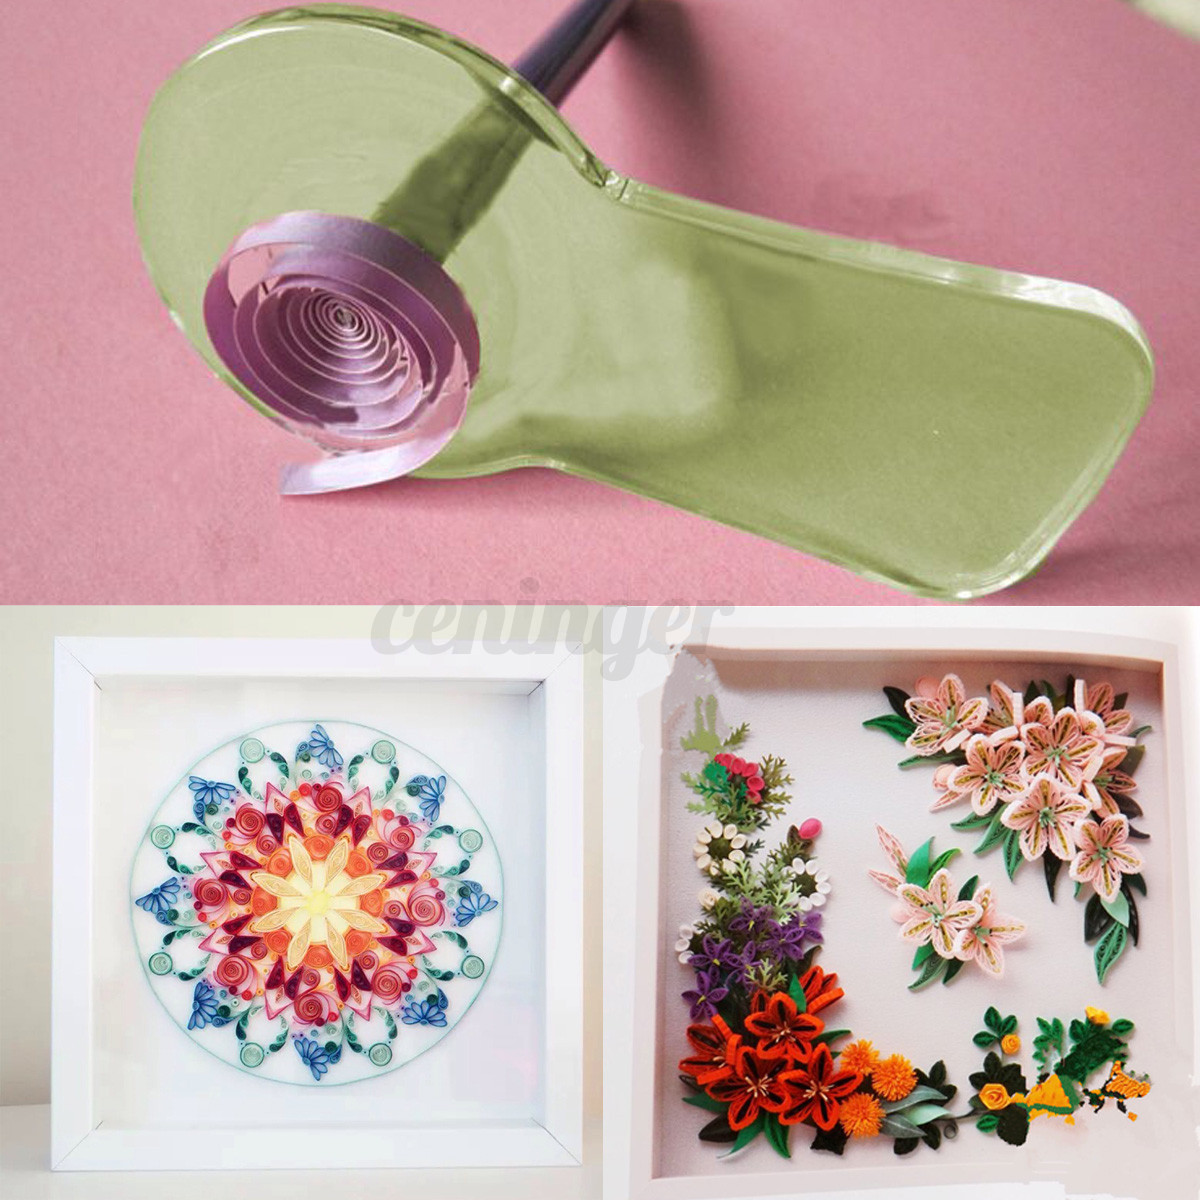 how to use quilling shape board